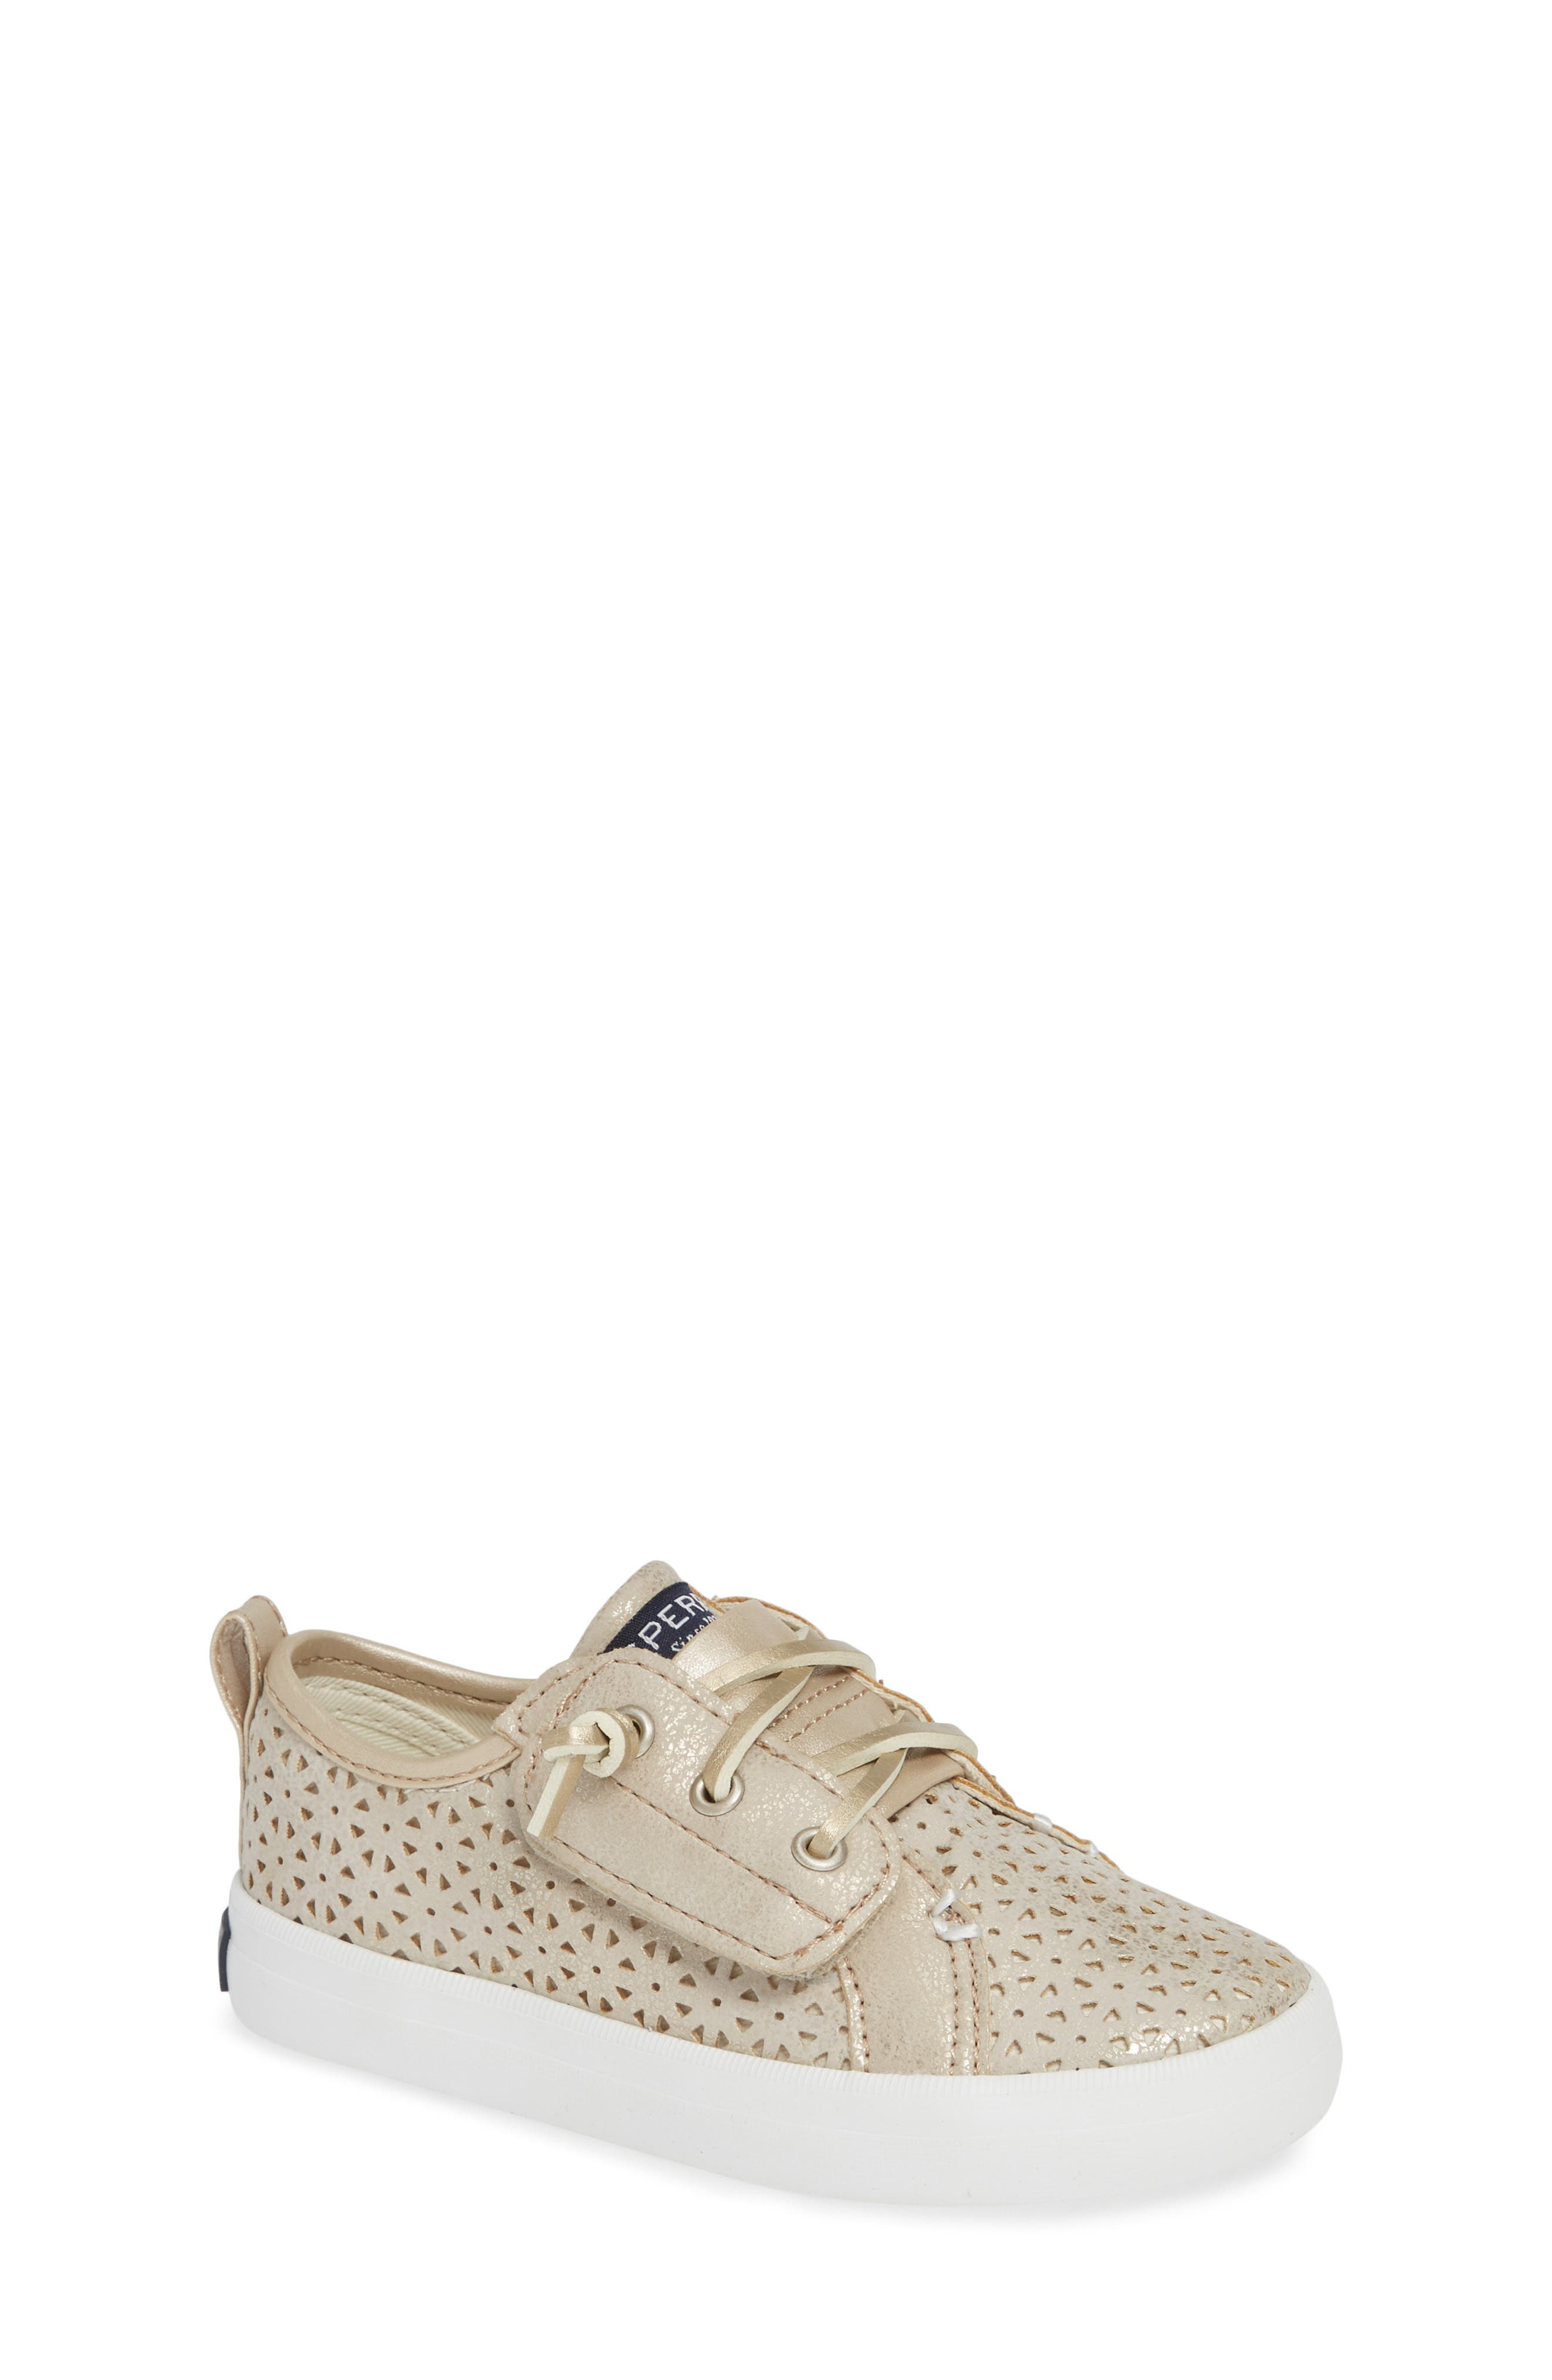 Sperry Crest Vibe Sneaker,                         Main,                         color, CHAMPAGNE SYNTHETIC